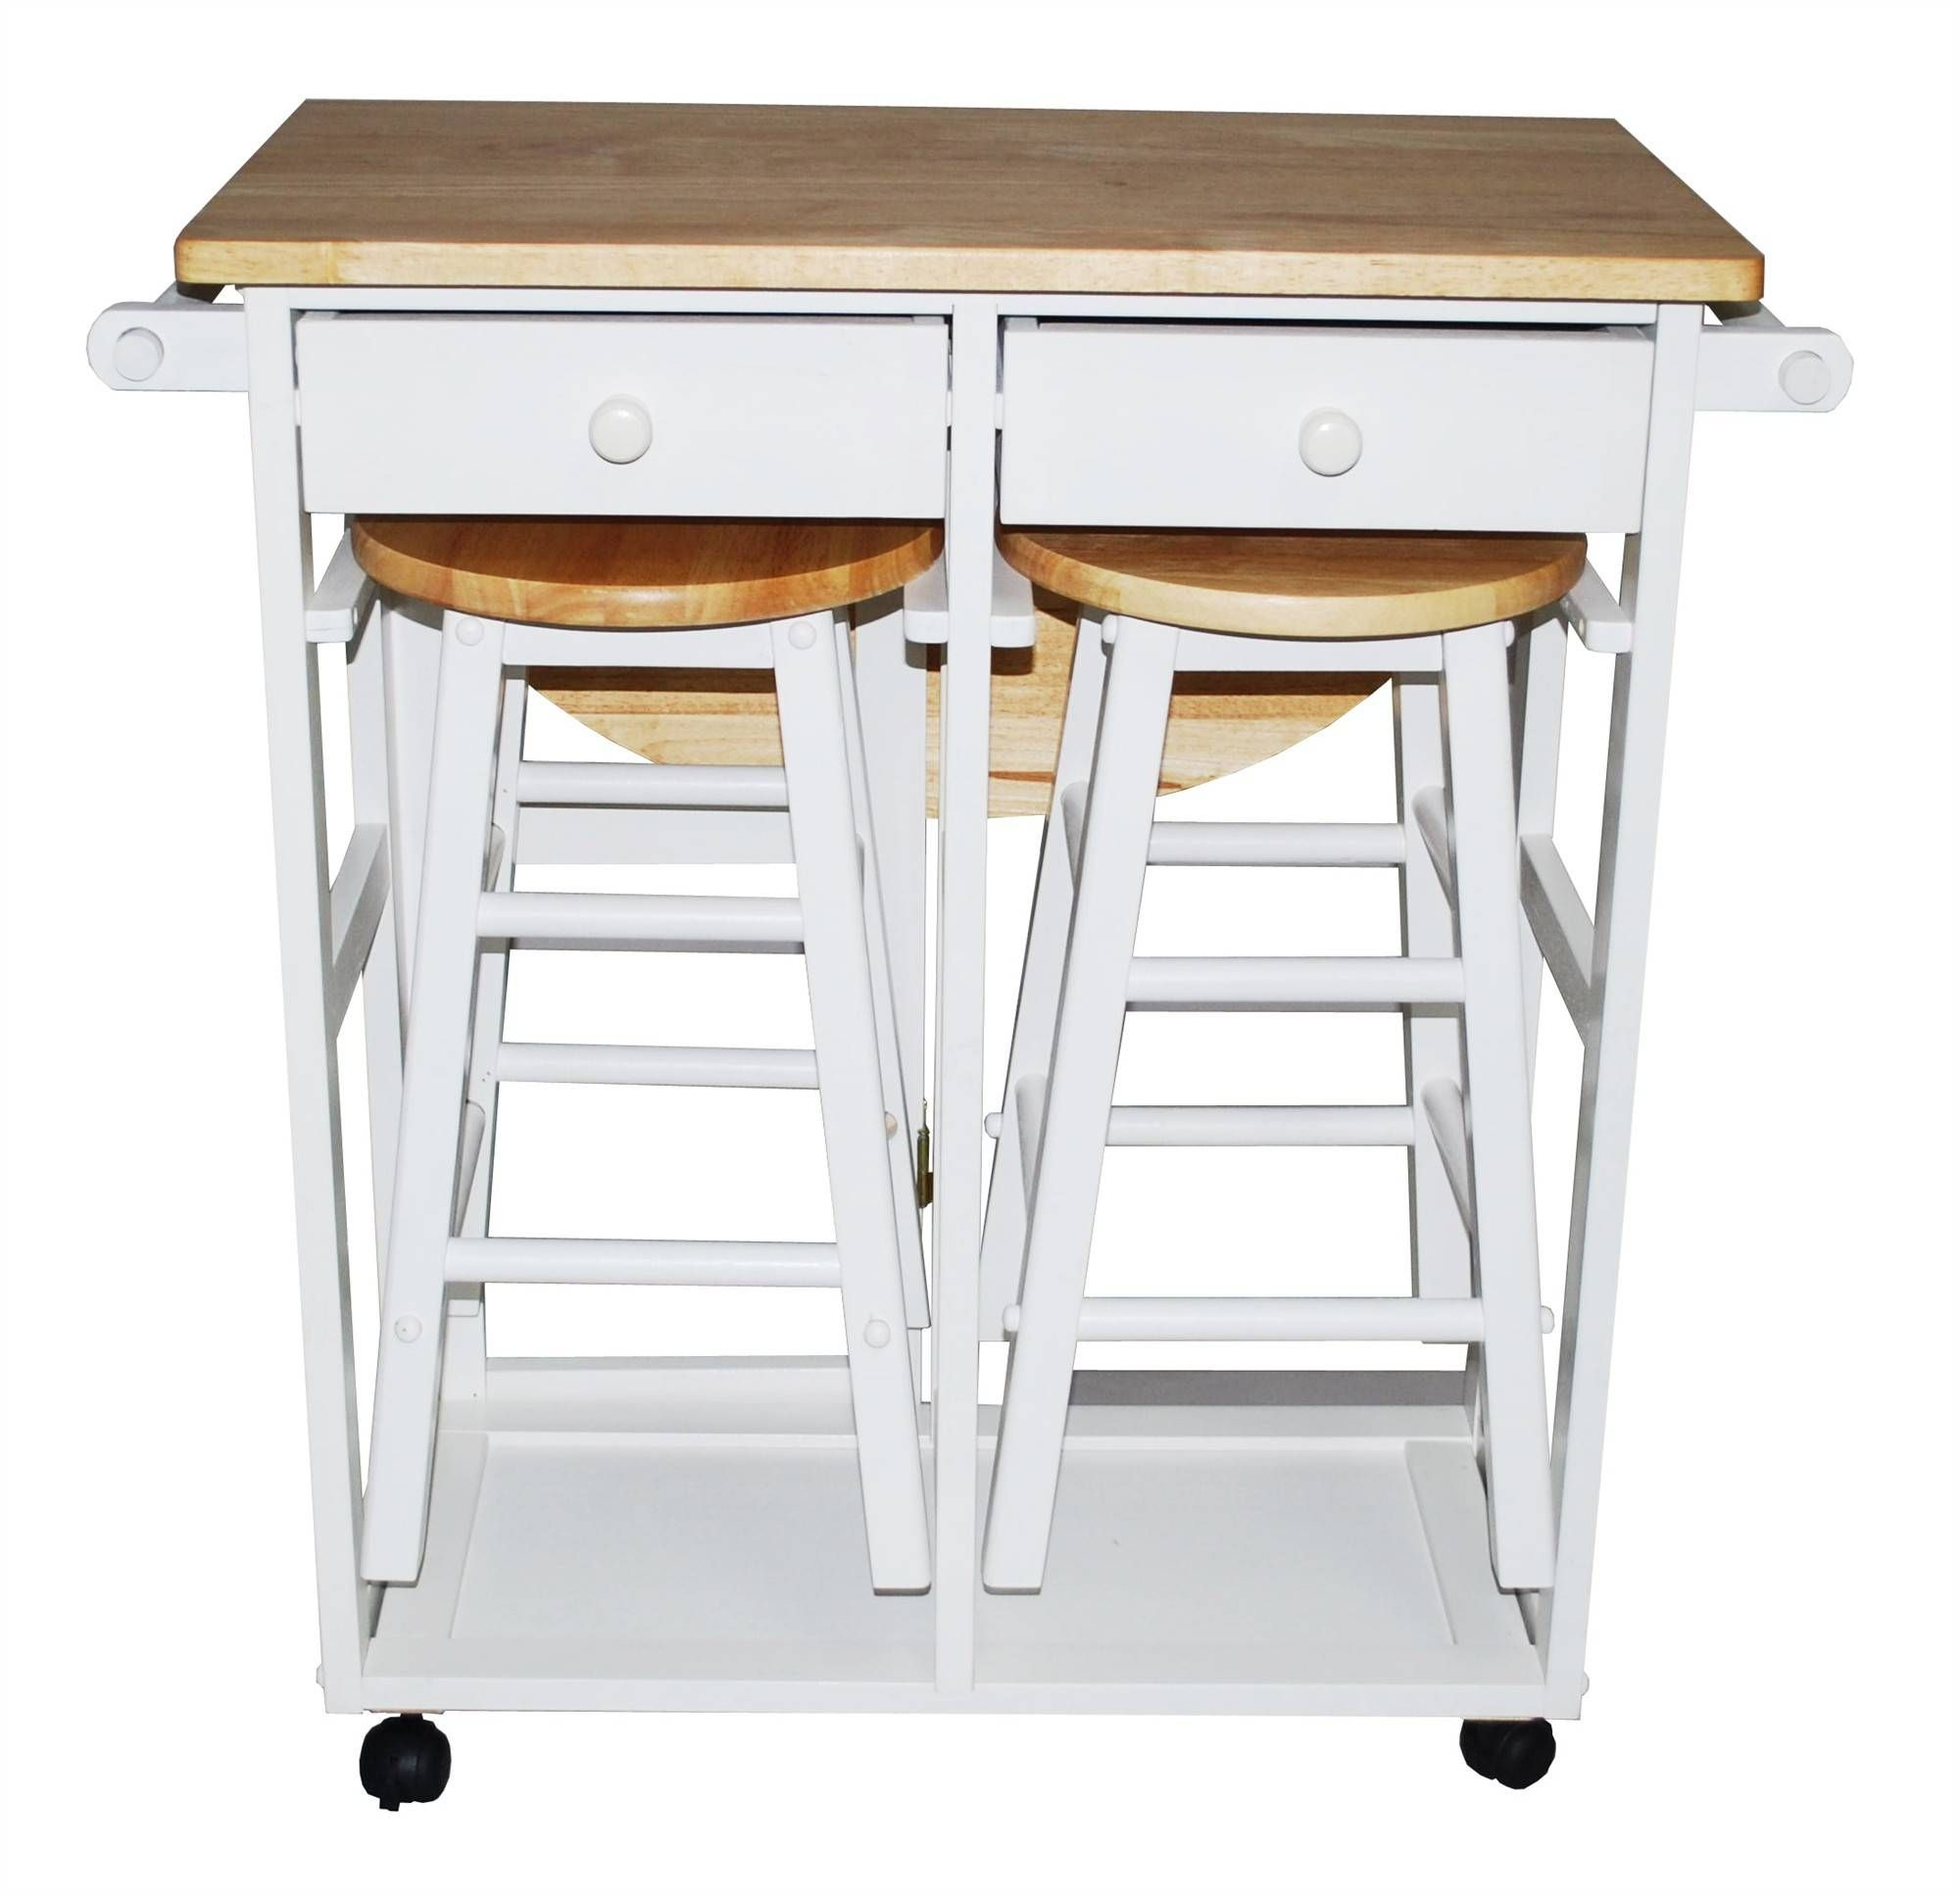 Small kitchen table and 2 chairs  Rolling Kitchen Island Tables  navigatorspbfo